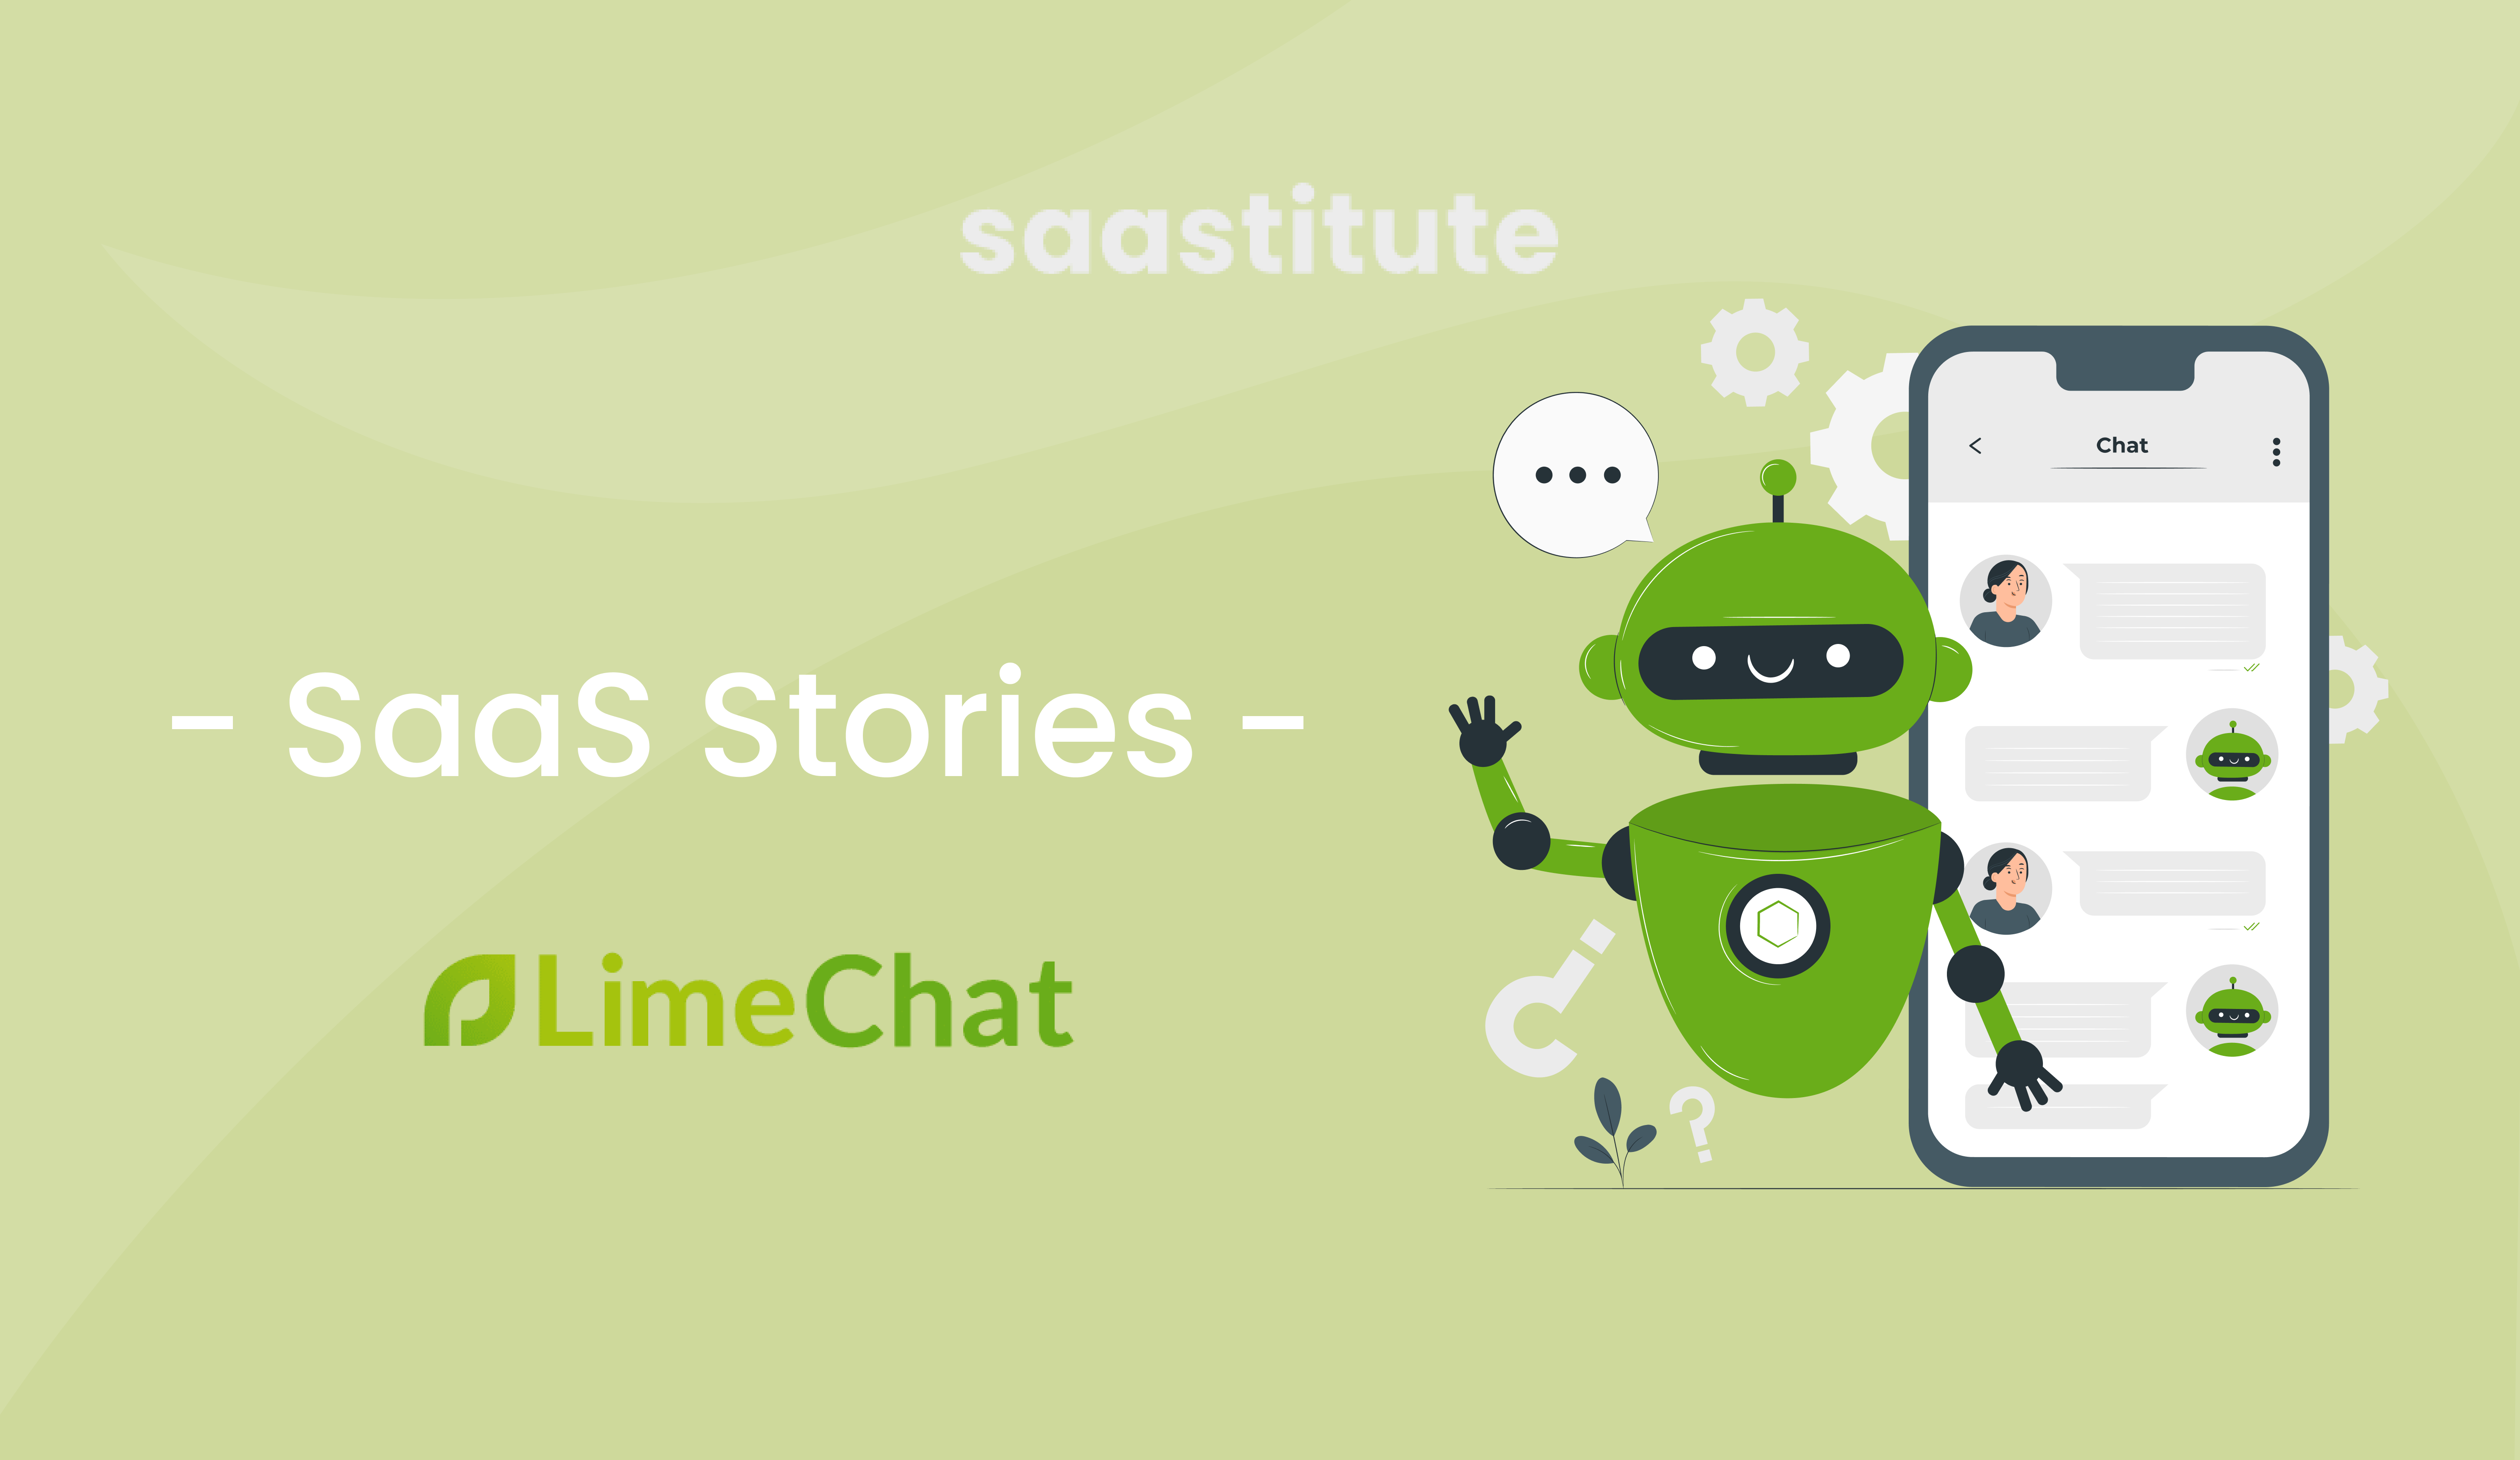 The LimeChat Story